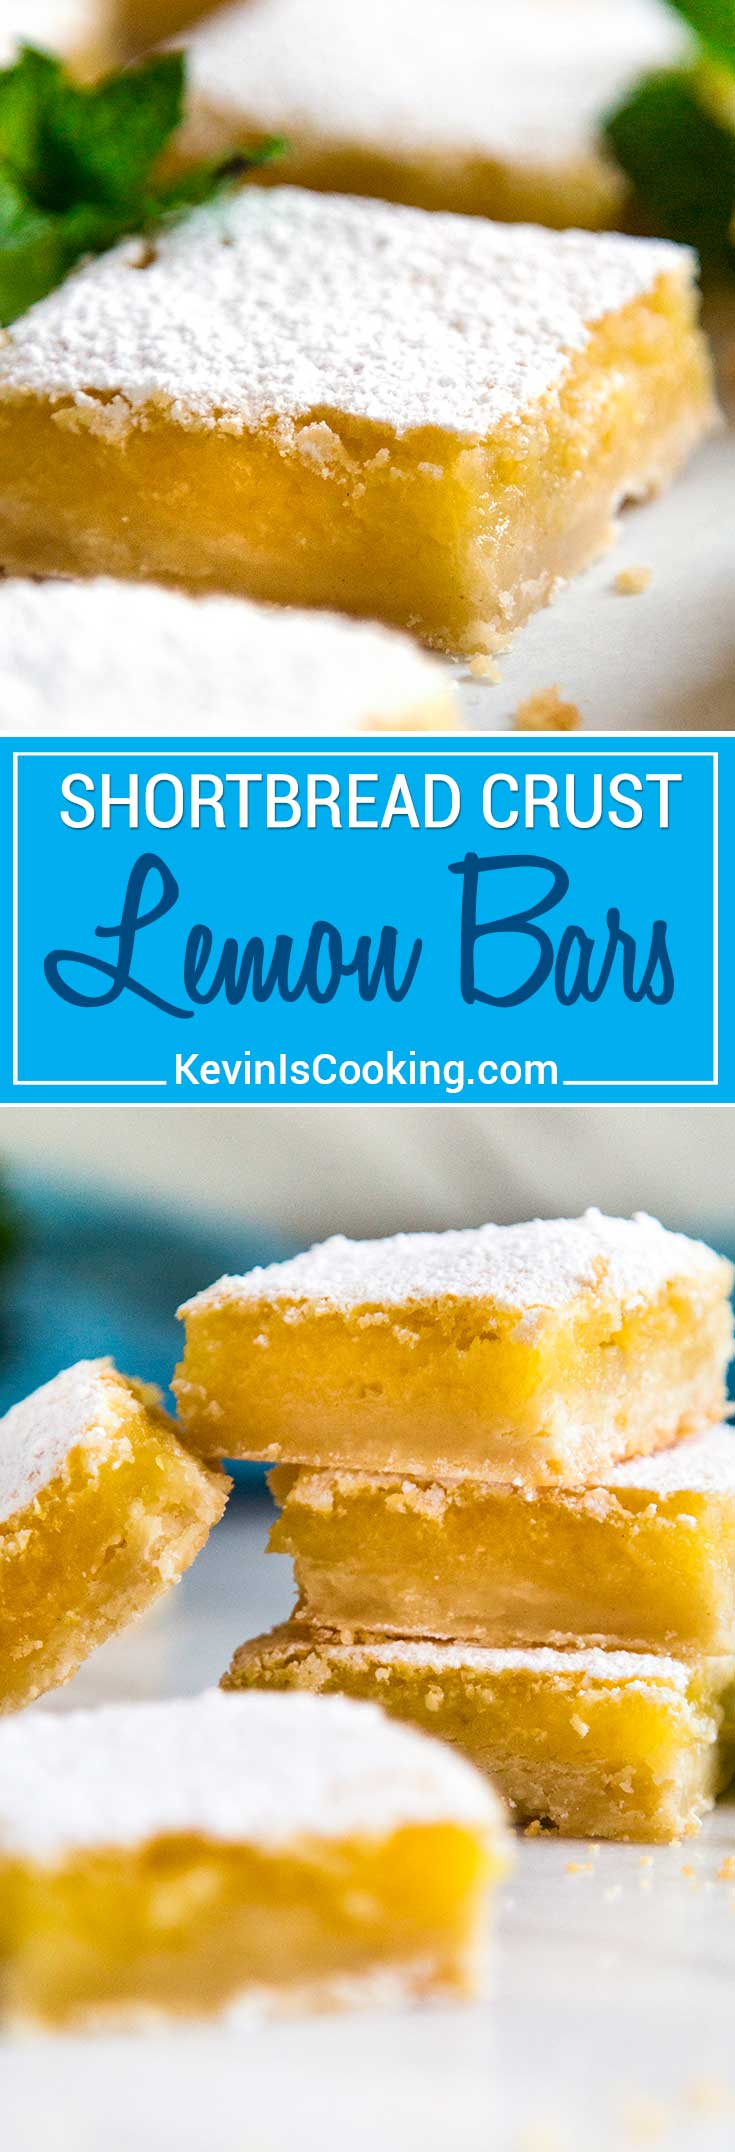 These Shortbread Lemon Bars are tart, sweet and the shortbread crust is crumbly soft. The perfect summer picnic dessert that can be enjoyed year round!